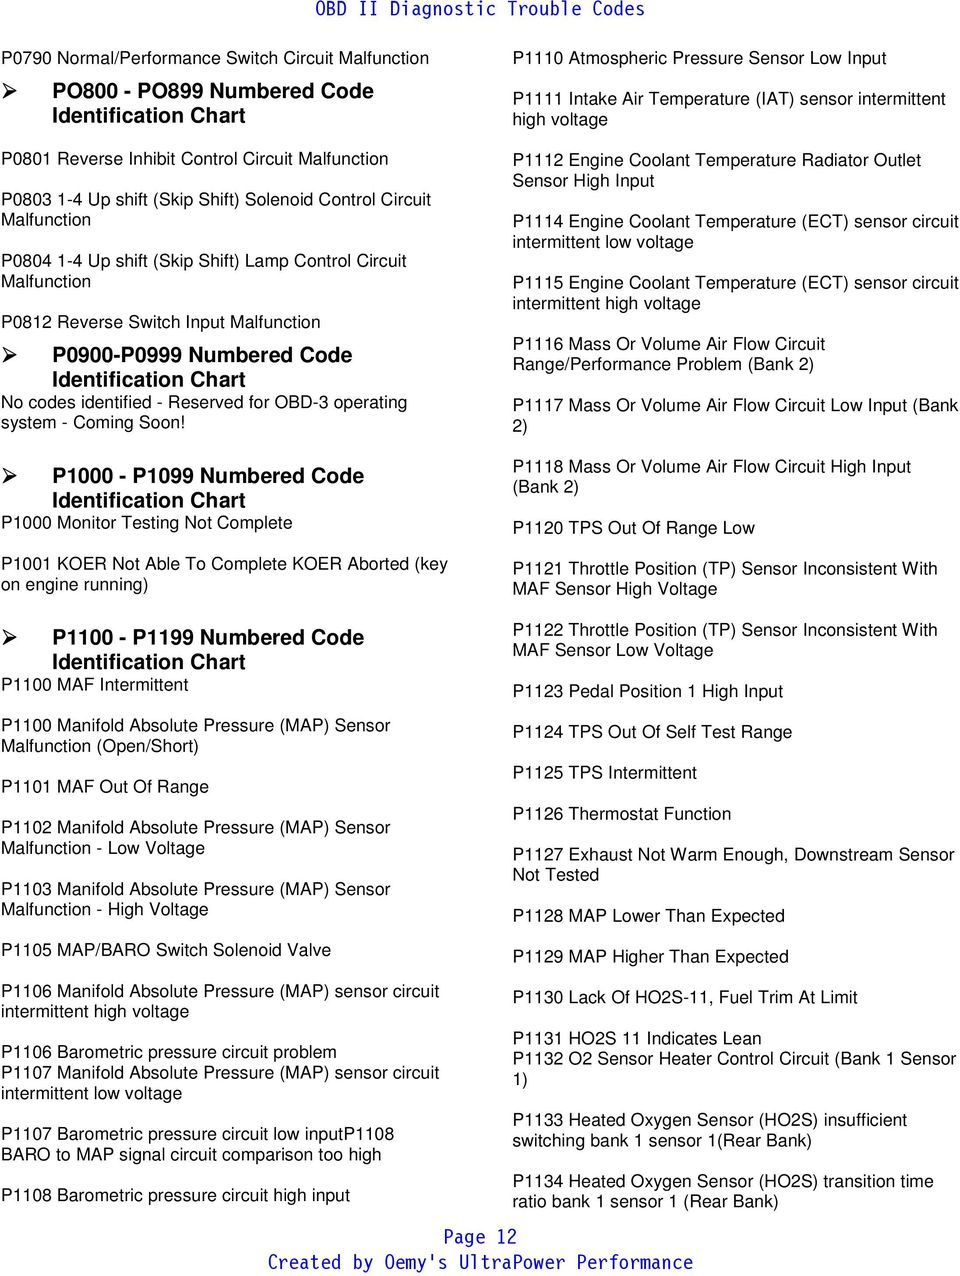 Obd Ii Diagnostic Trouble Codes Table Of Contents Pdf Oxygen Sensor Circuit Http Enginecodescom Articles Oxygensensor P1000 P1099 Numbered Code Monitor Testing Not Complete P1001 Koer Able To 15 P1135 O2 Heater